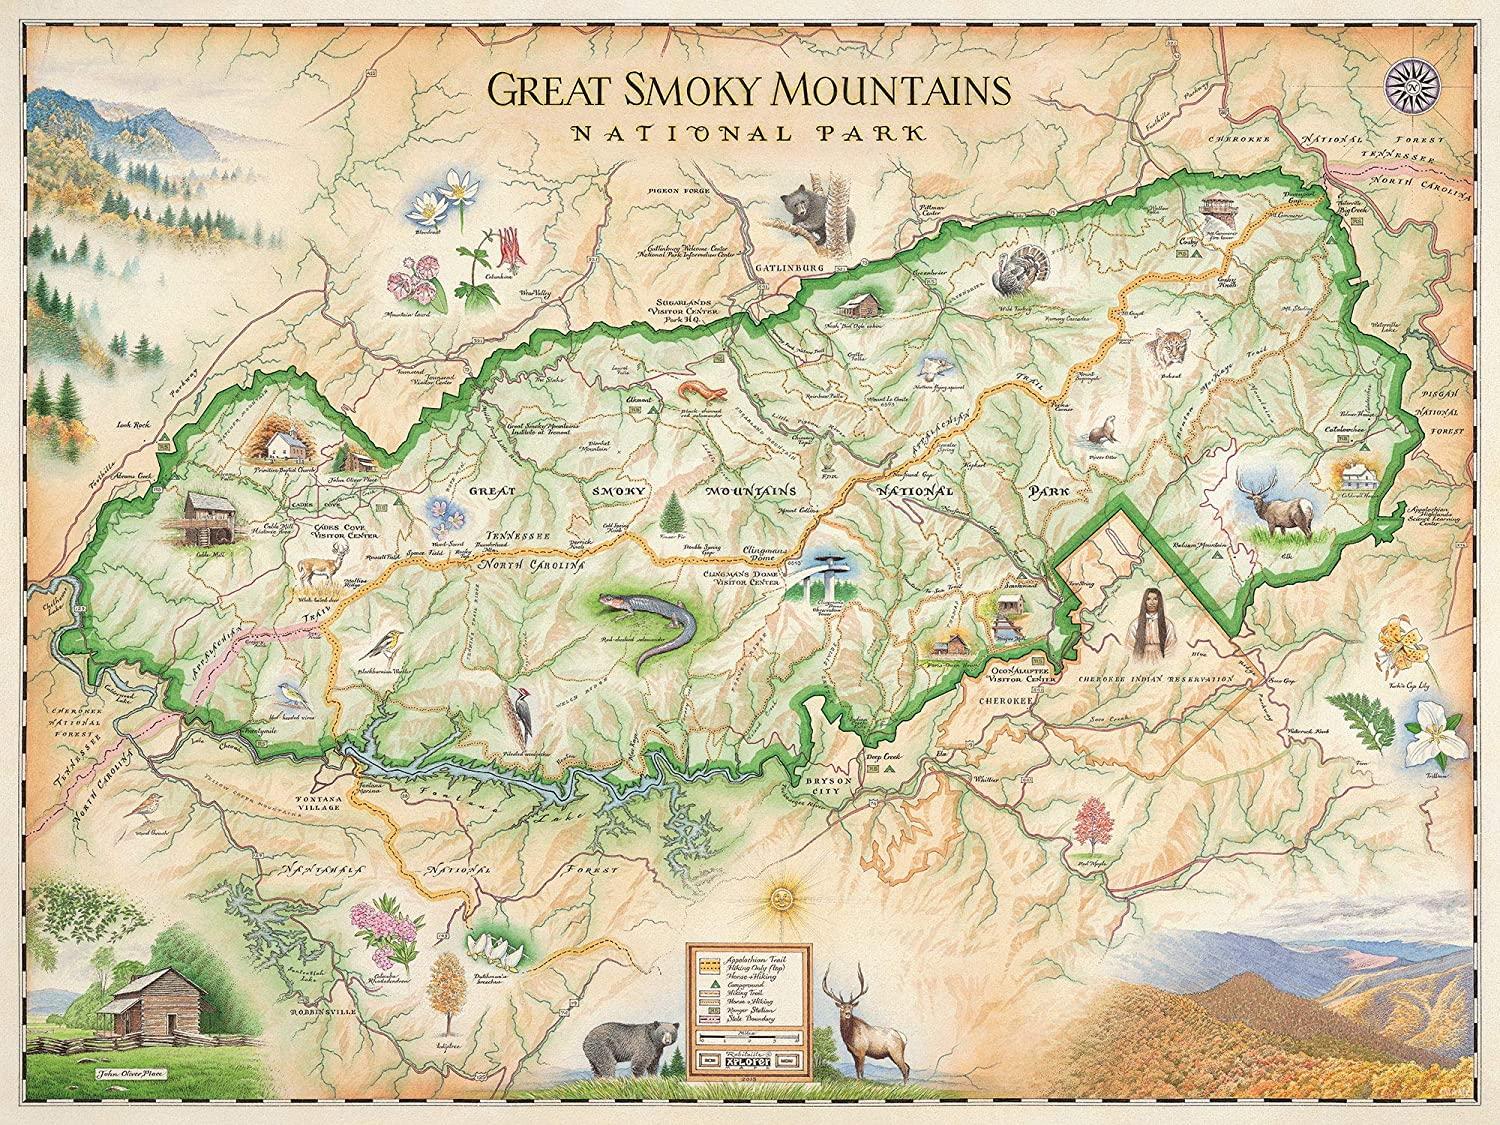 Xplorer Maps Great Smoky Mountain National Park Map - Authentic Hand on map of the ozarks, map of great smoky mountains in tennessee, map of the grand canyon, map of the sequoia national park, map of the cumberland plateau, map of the adirondack park, map of the university of virginia, map of the smoky mtns,